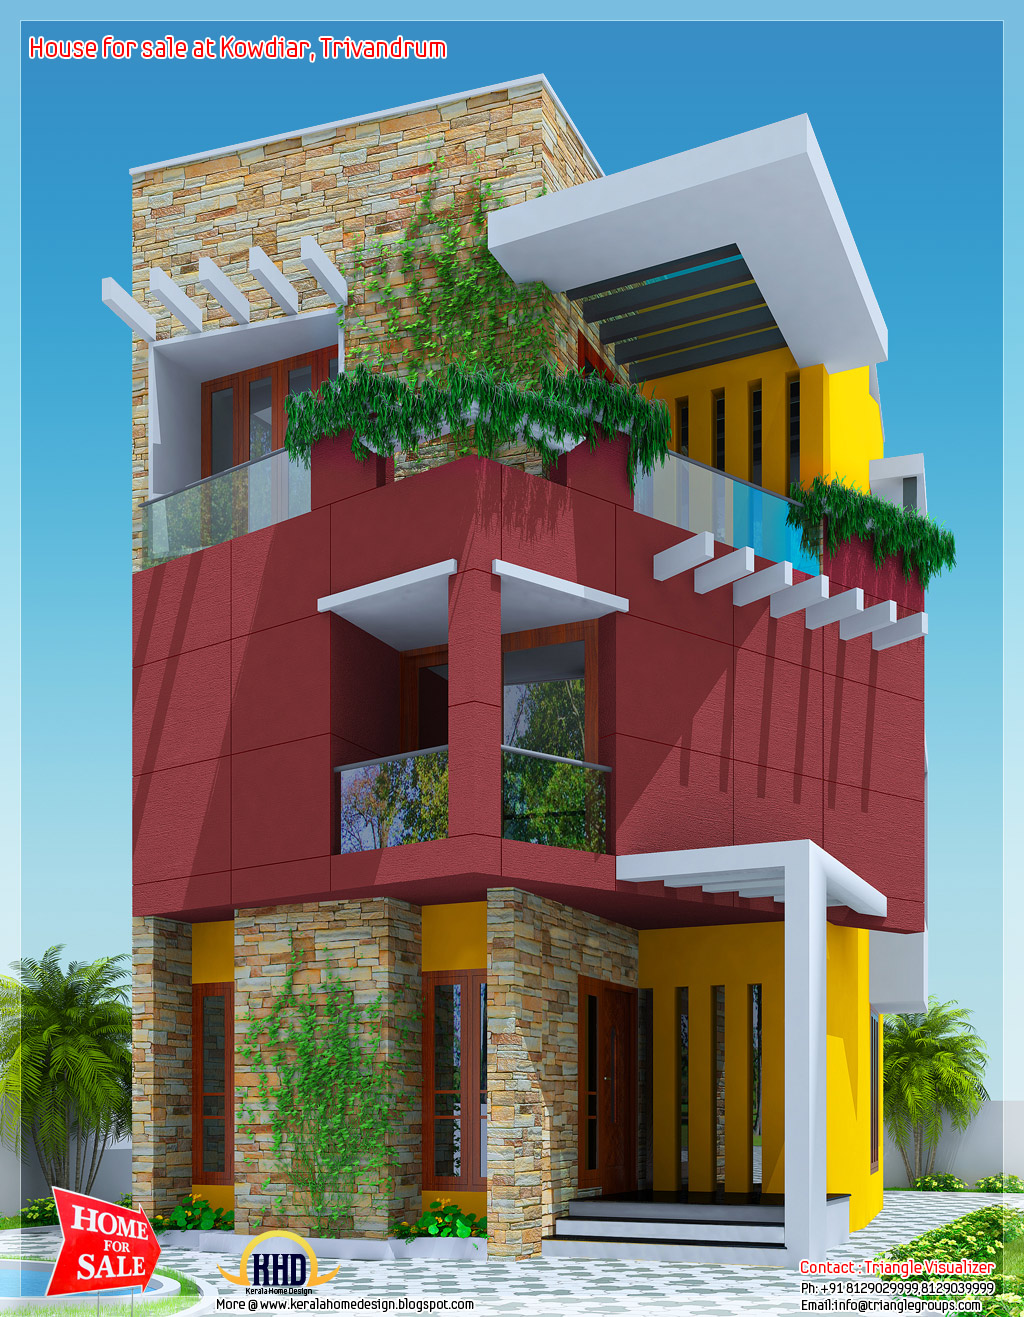 3 floor house for sale at kowdiar trivandrum kerala for Architect house plans for sale